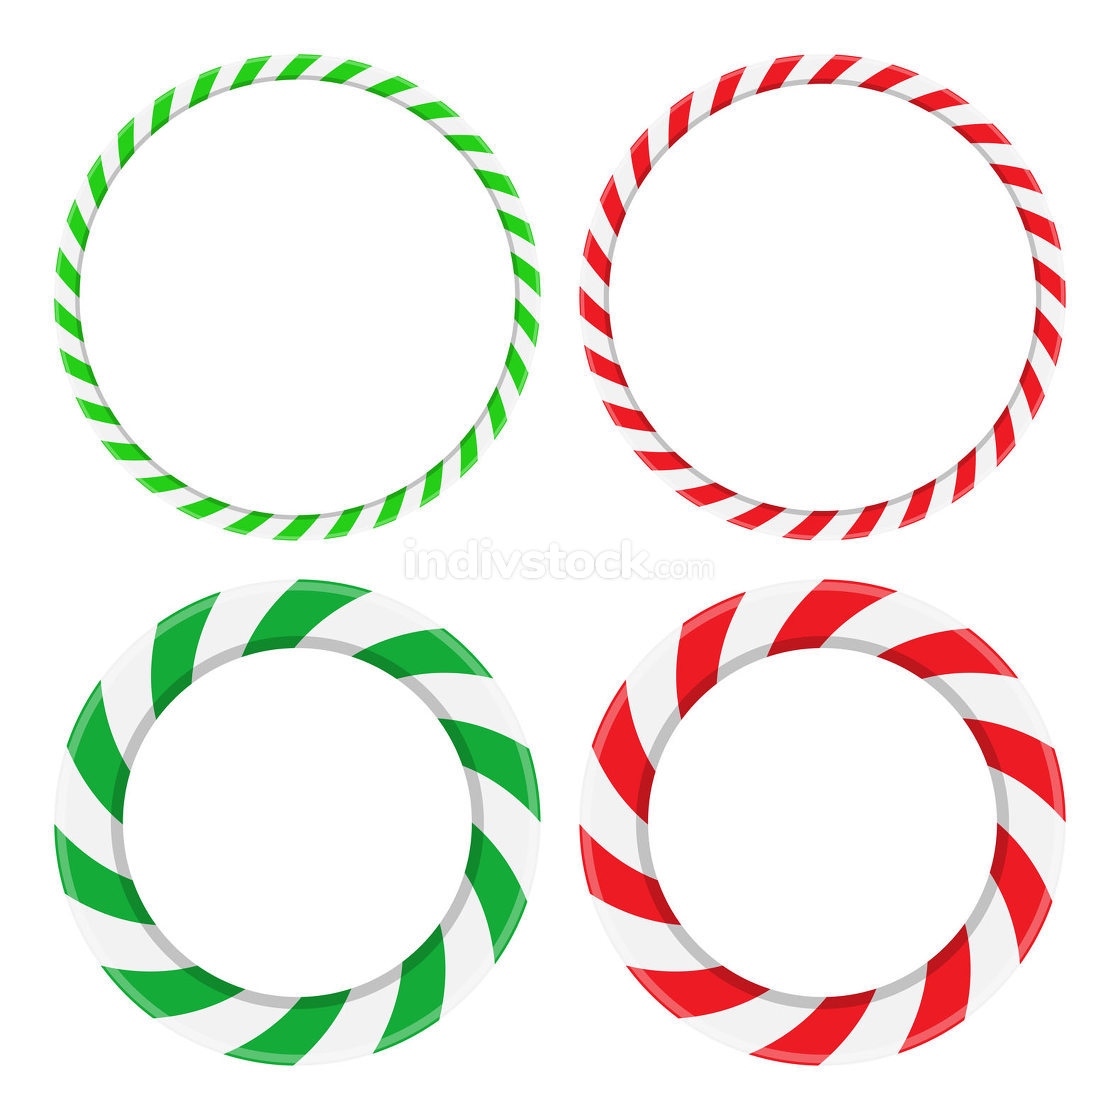 Candy cane circle frame set. Christmas round border with stripes